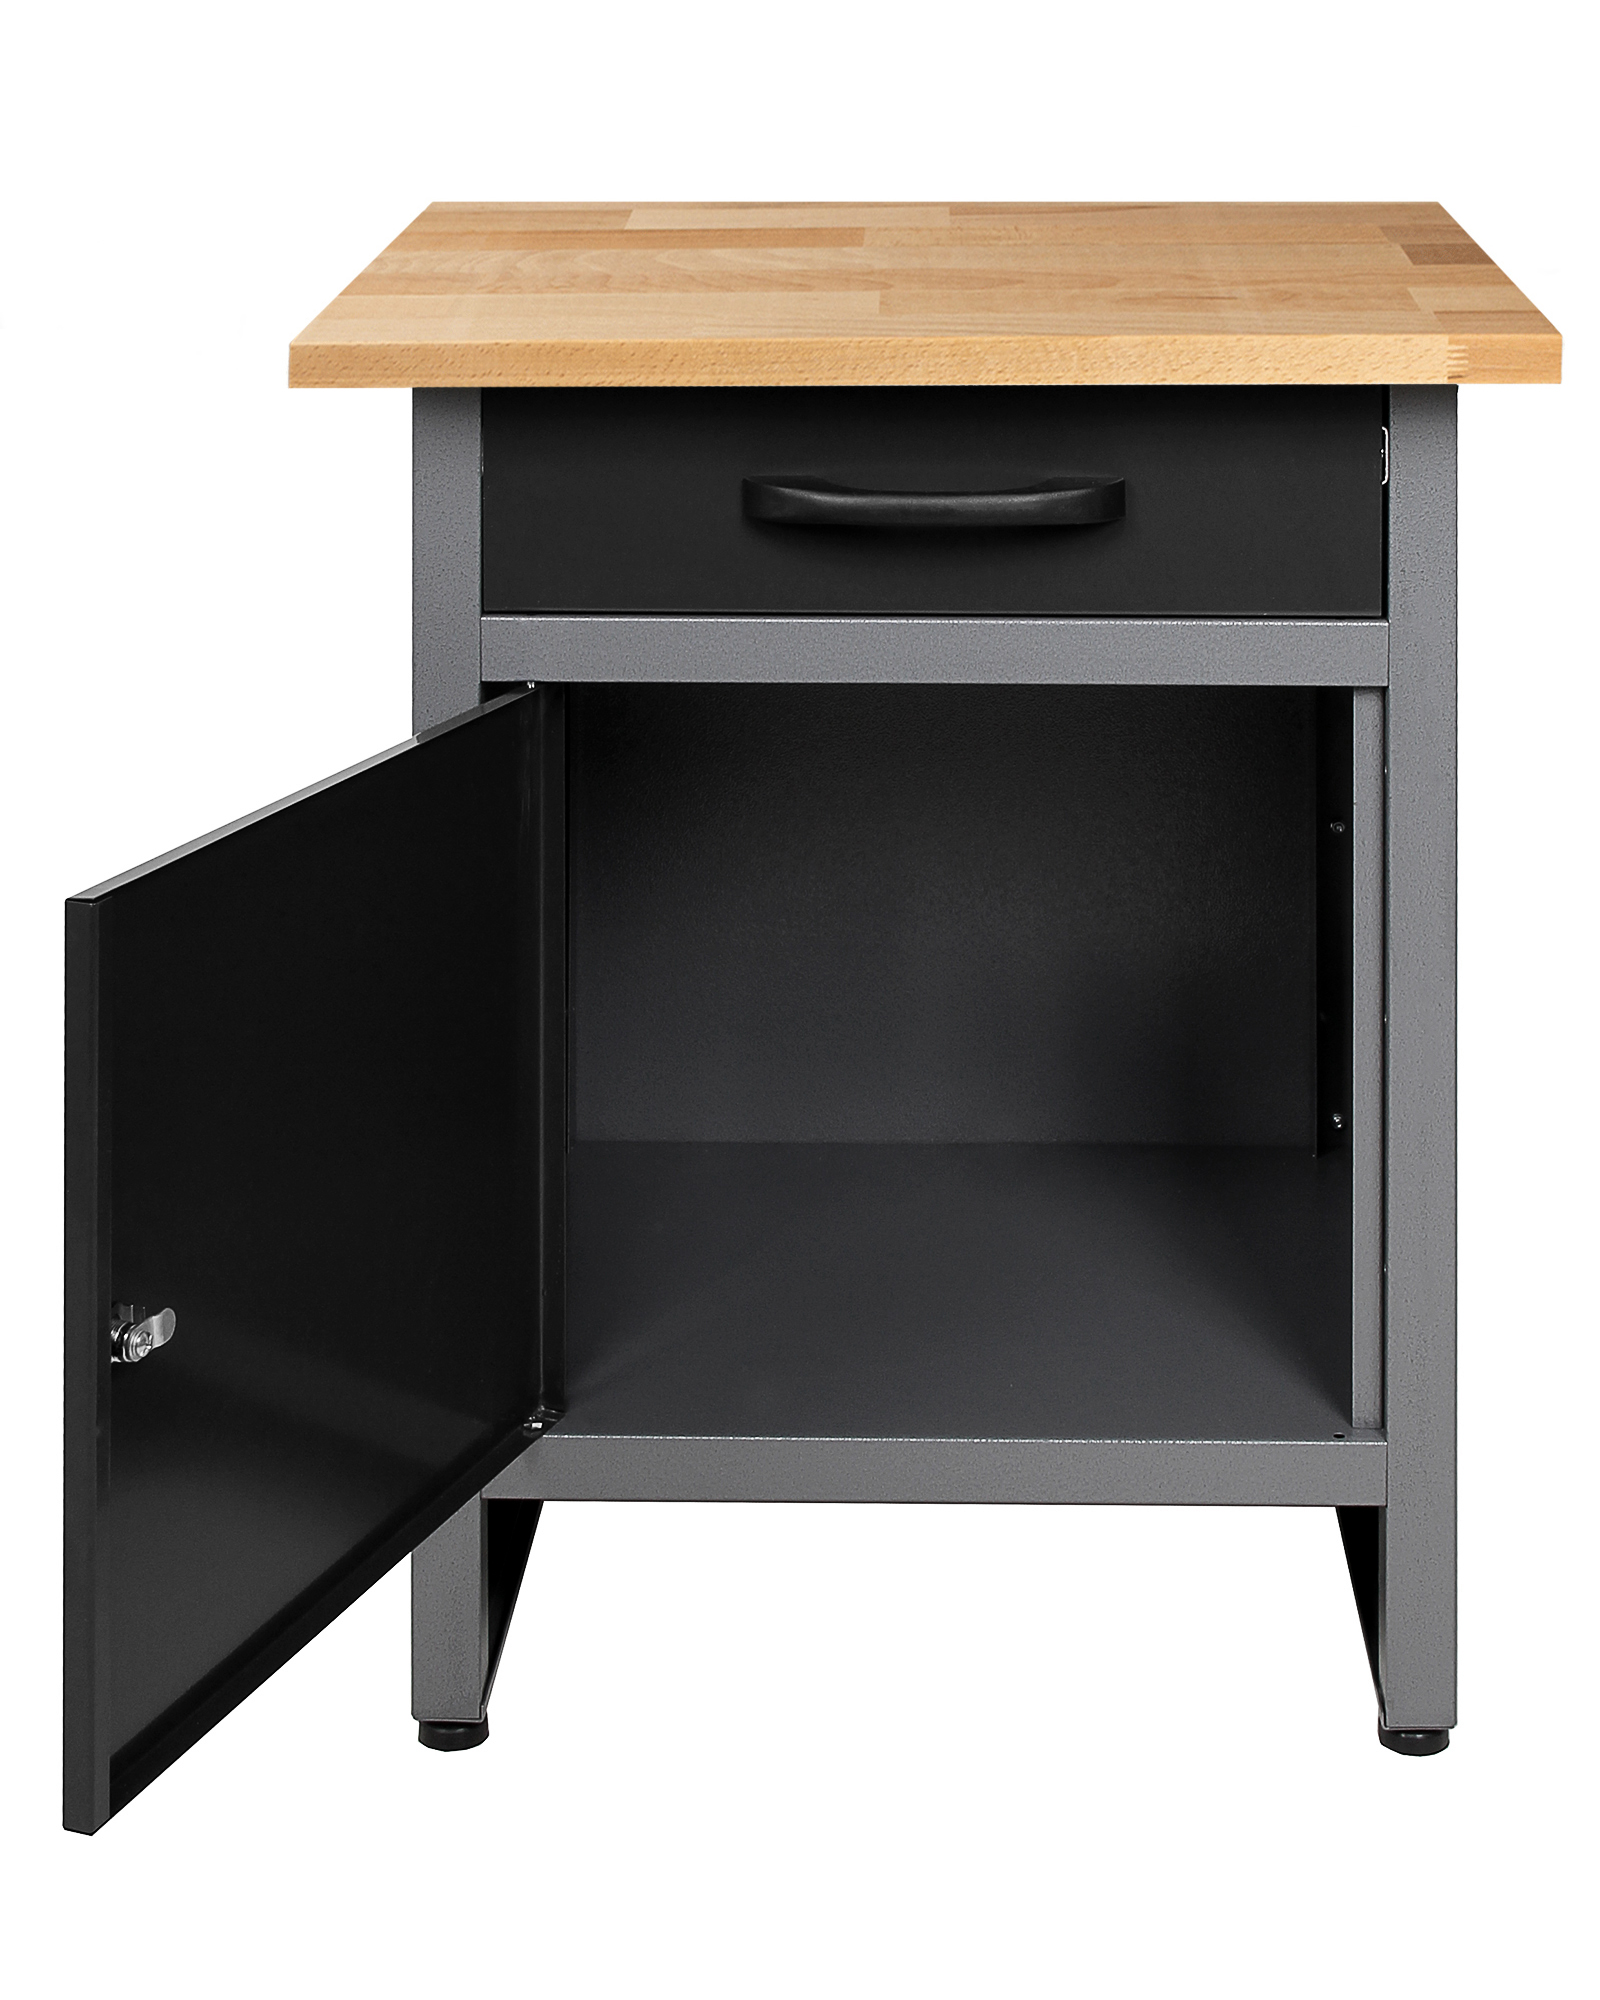 ondis24 werkstatt set entdecker 120 cm 1 schrank g nstig online kaufen. Black Bedroom Furniture Sets. Home Design Ideas